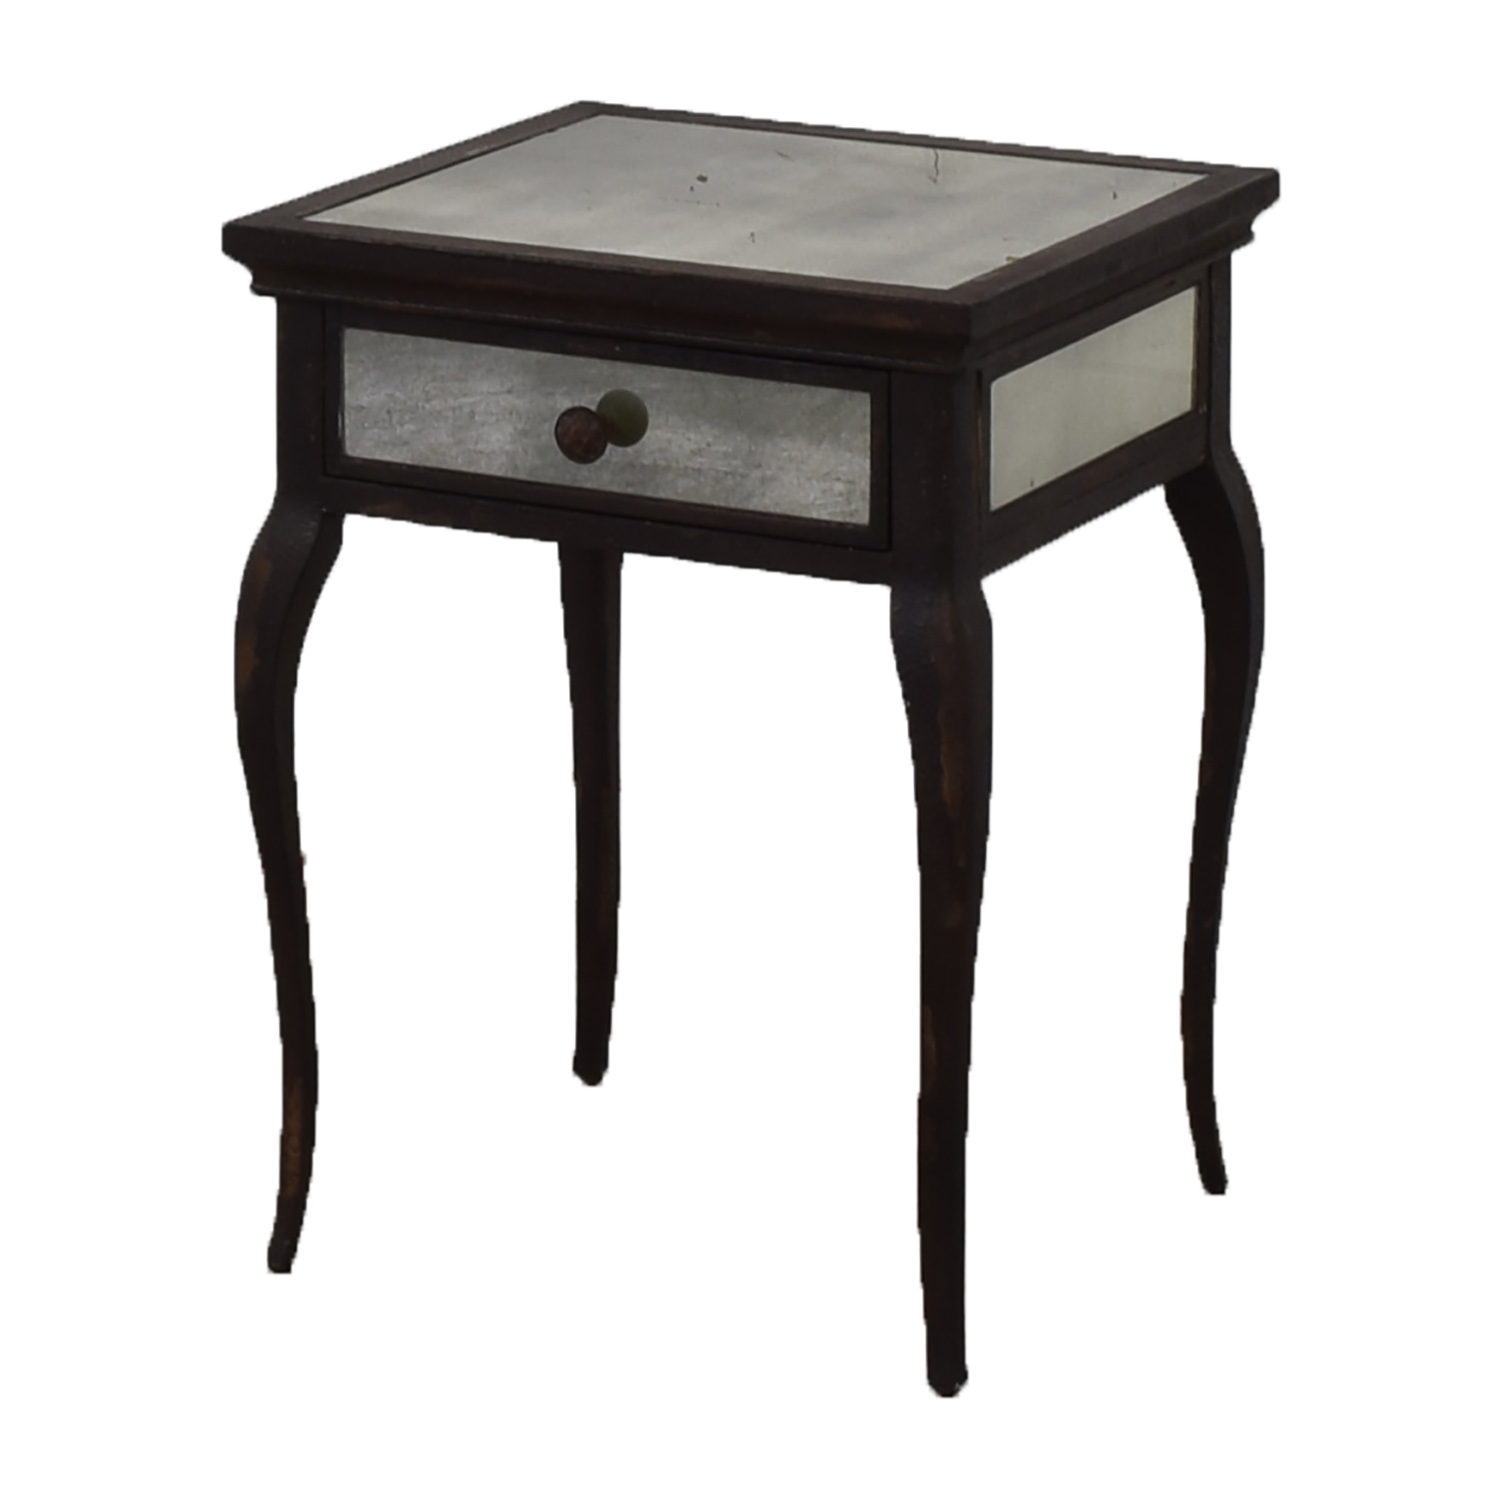 Uttermost Uttermost Smoked Mirror and Metal End Table with One Drawer brown